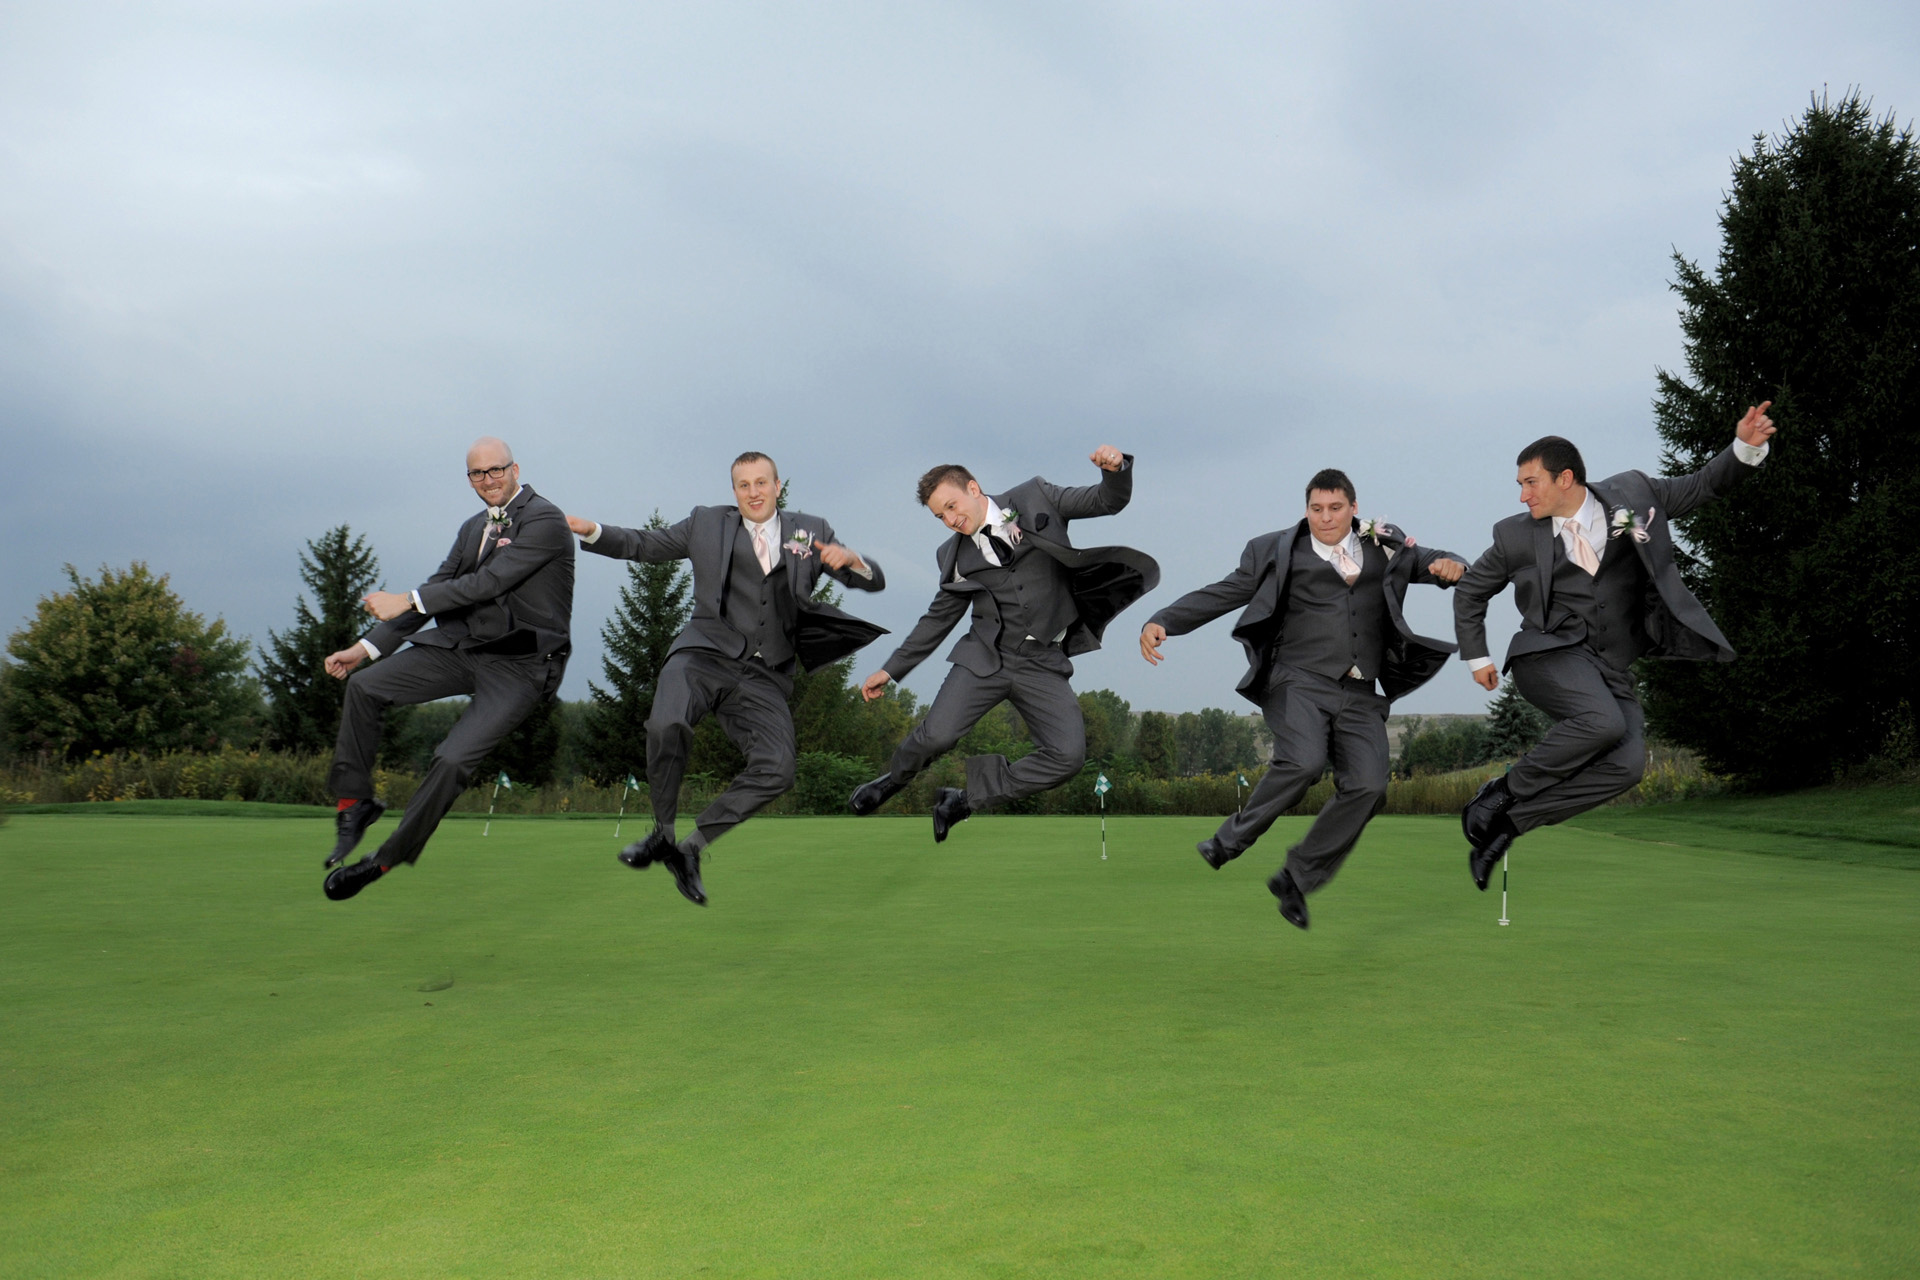 The Woodlands of Van Buren in Wayne, Michigan wedding photographer's photo of  the groomsmen clicking their heels which was their idea of something they like to do after the wedding at the The Woodlands of Van Buren in Wayne, Michigan.